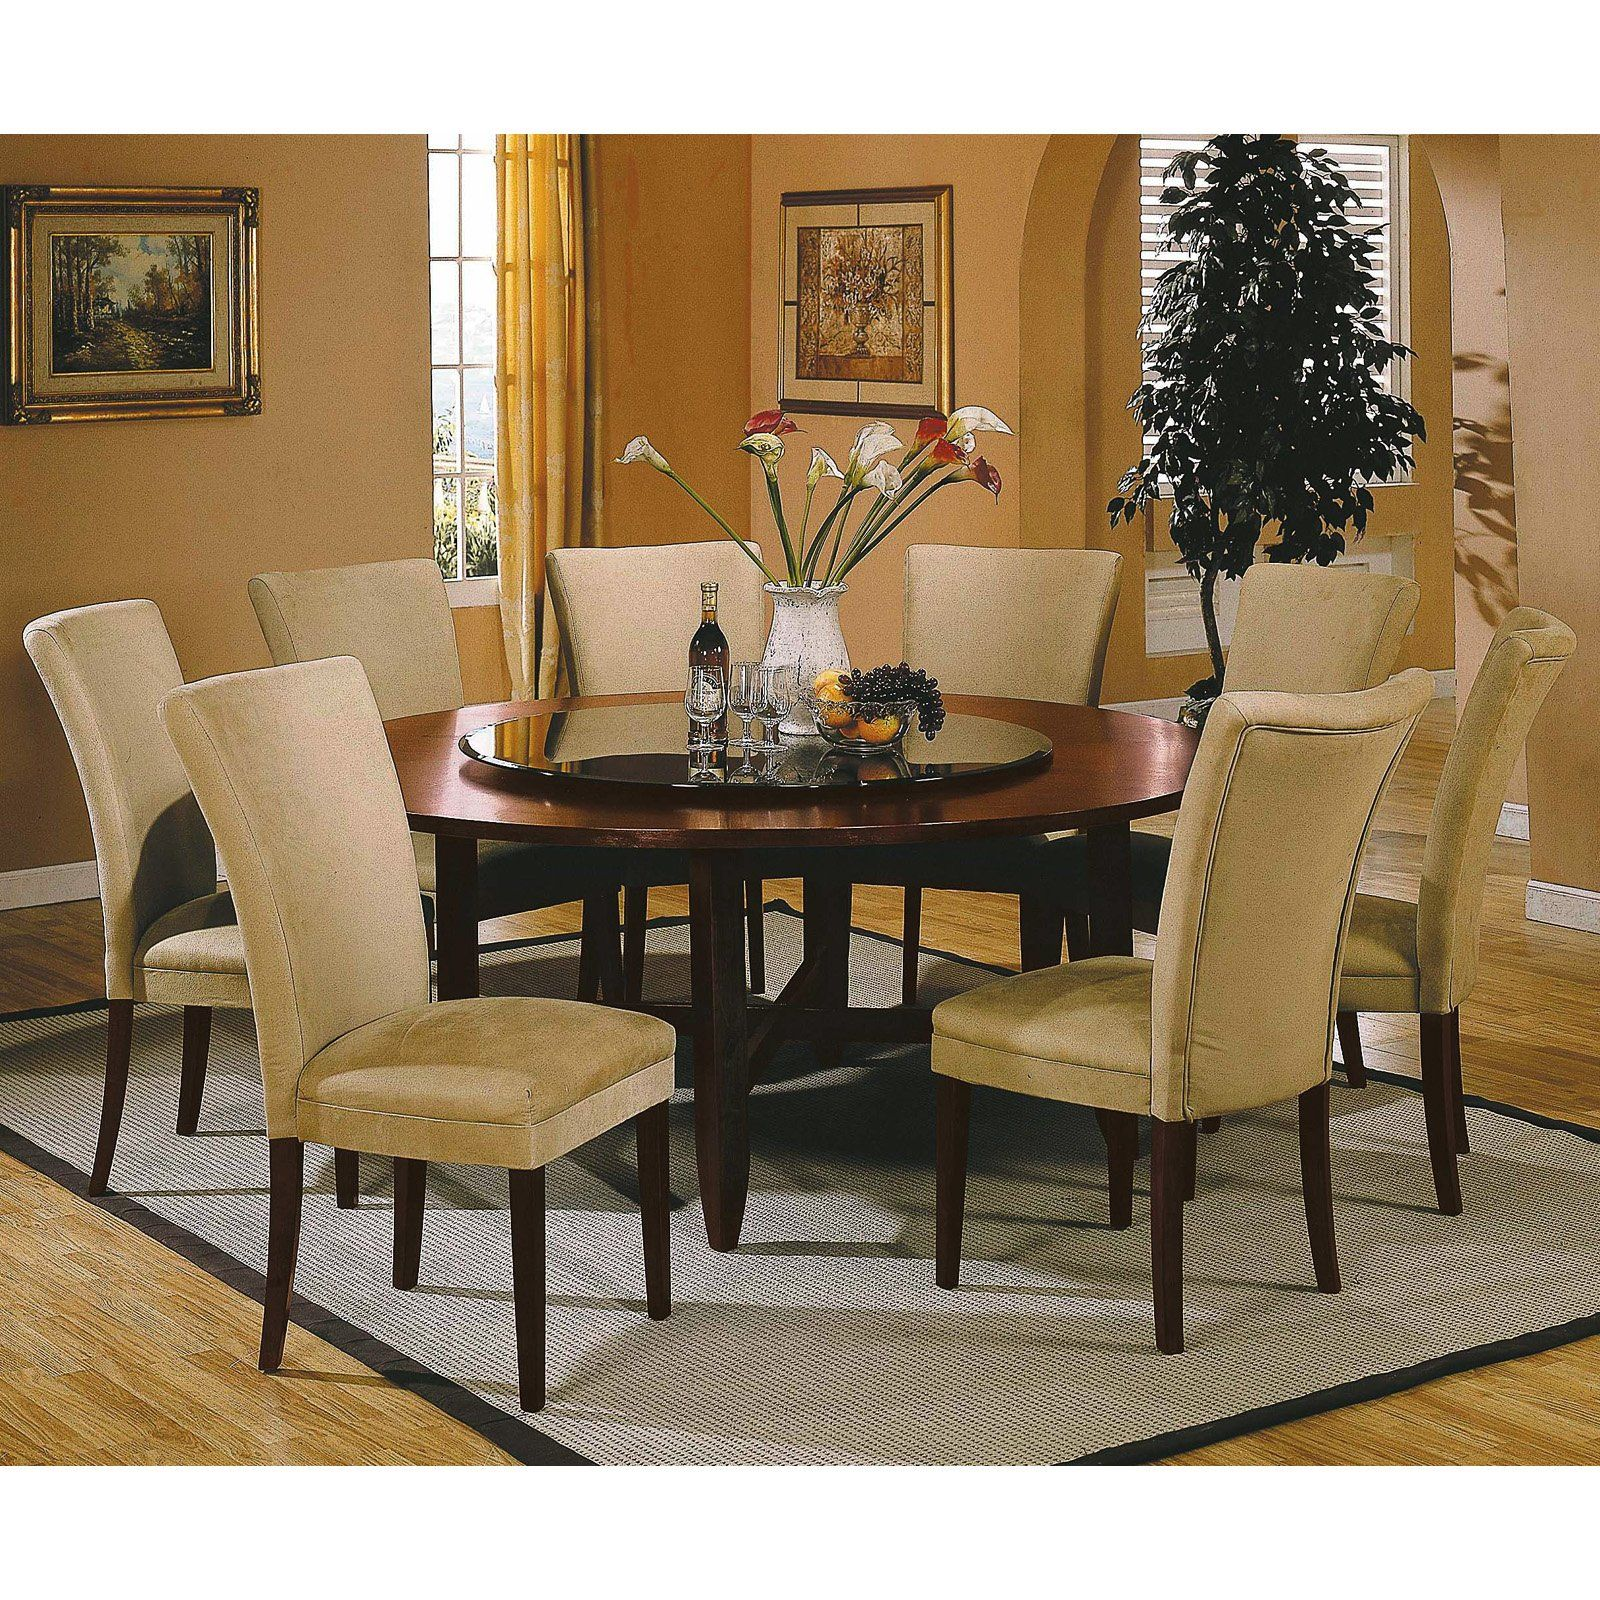 Steve Silver Avenue 9 Piece 72 Inch Round Dining Table Set 1599 99